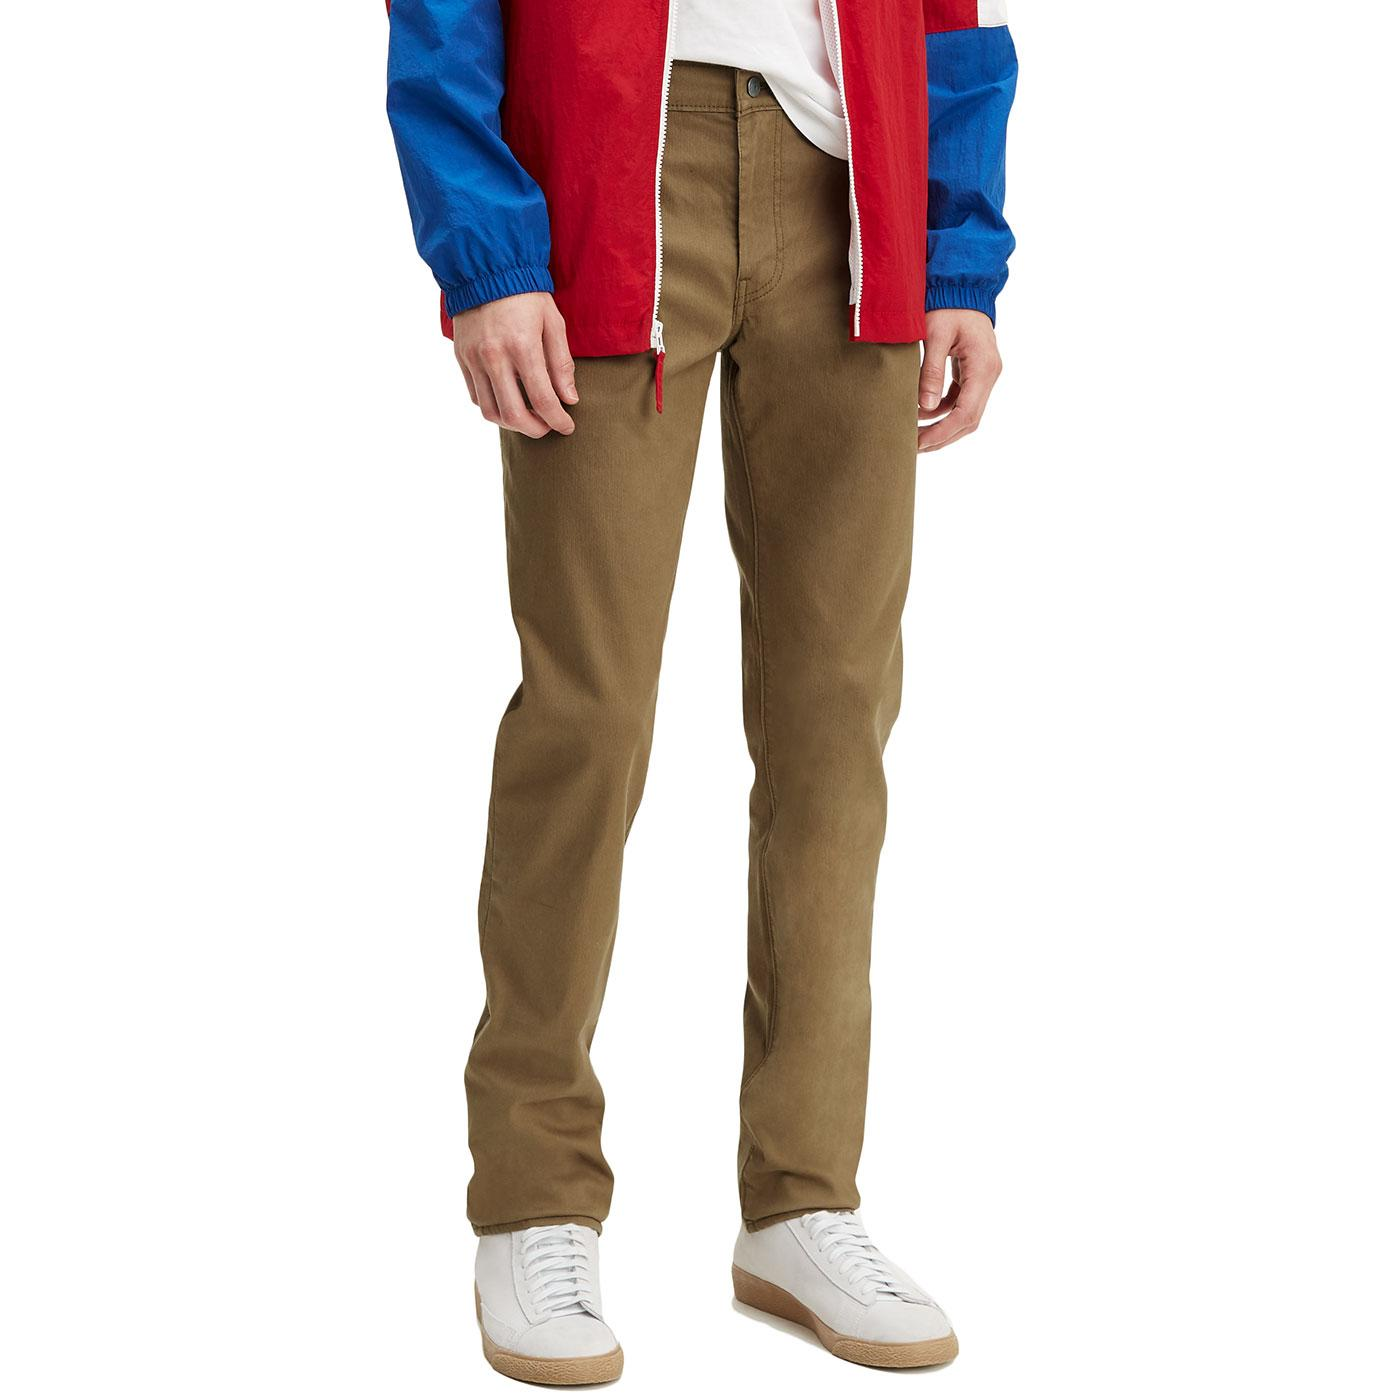 0a913386 LEVI'S 511 Retro Mod Bedford Cord Chino Trousers in Cougar